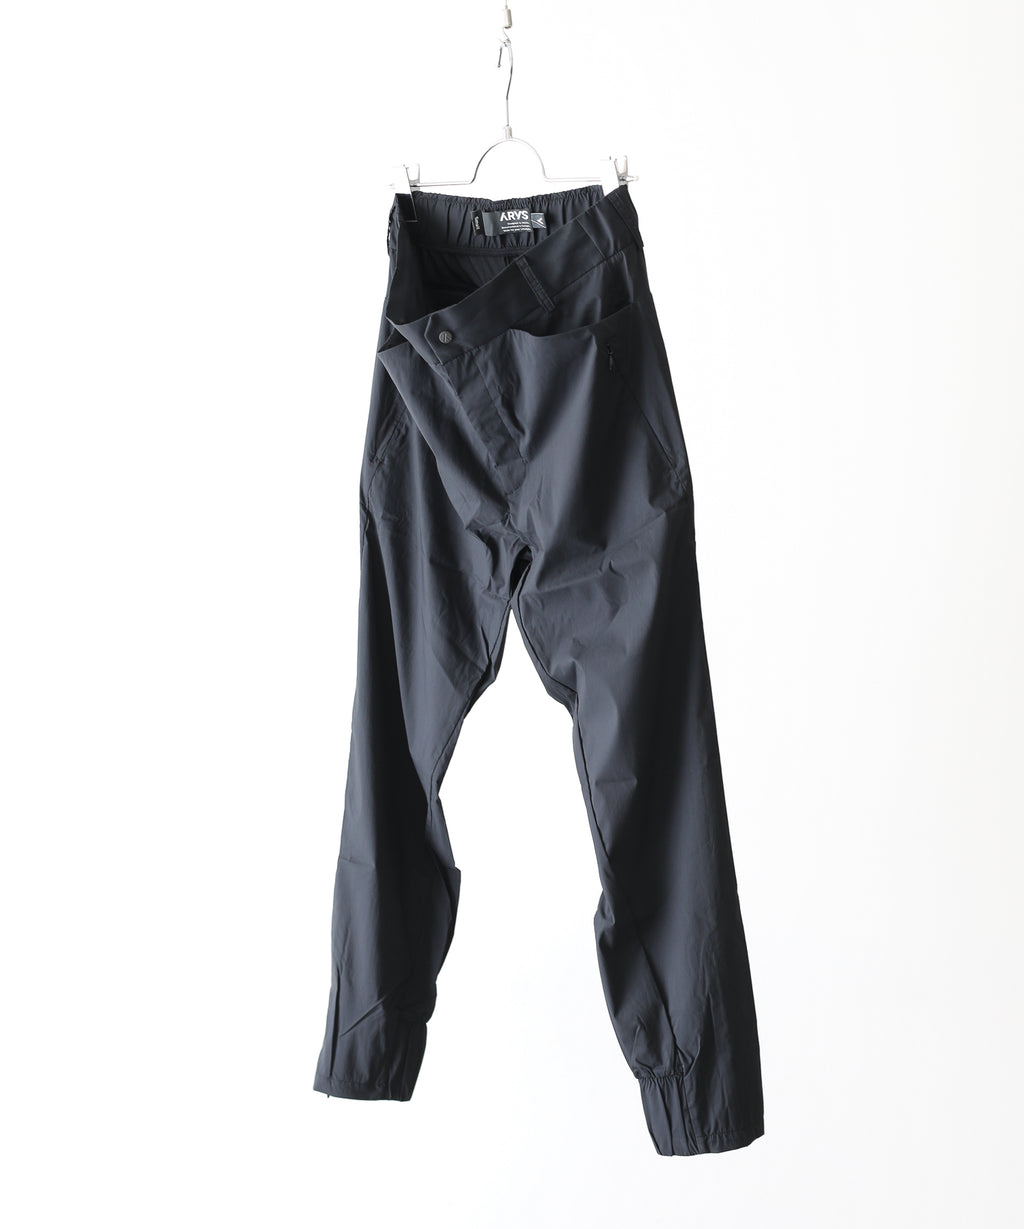 ARYS エリス TraceTrousers BLACK session